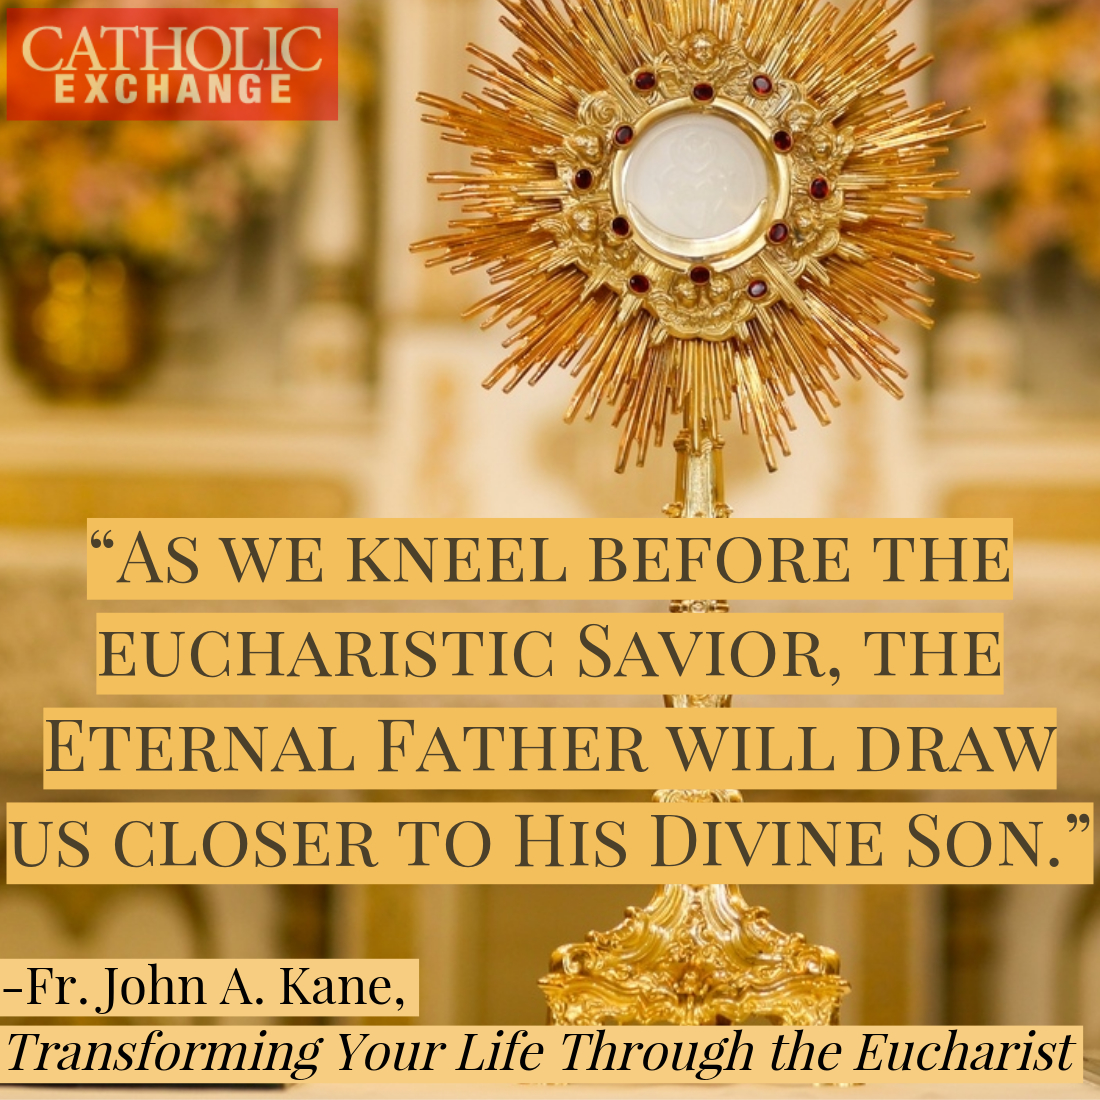 Why We Pray Before the Blessed Sacrament